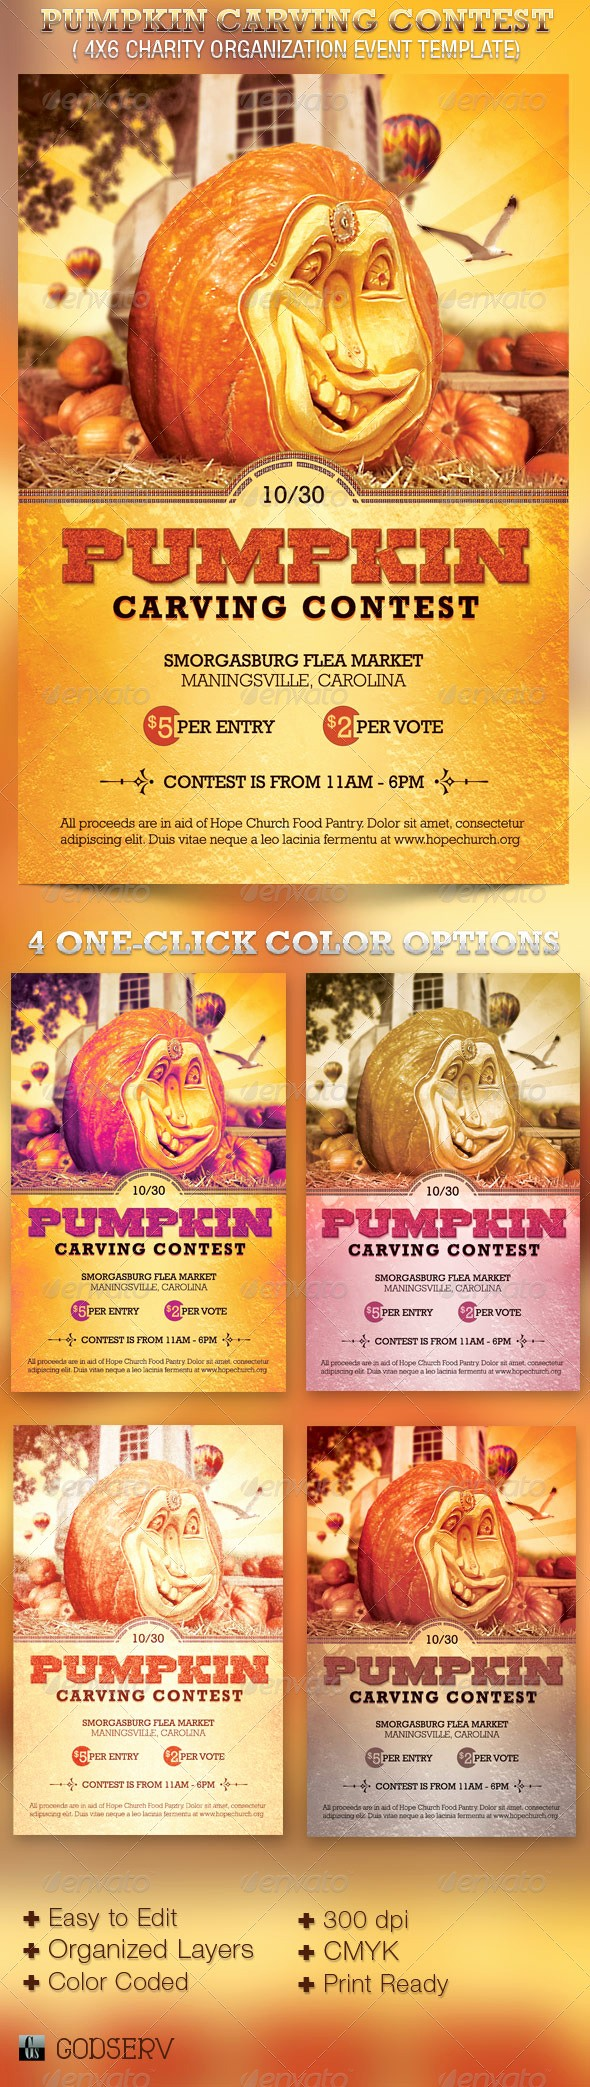 Pumpkin Carving Contest Flyer Template Fresh Template for Pumpkin Decorating Flyer Tinkytyler